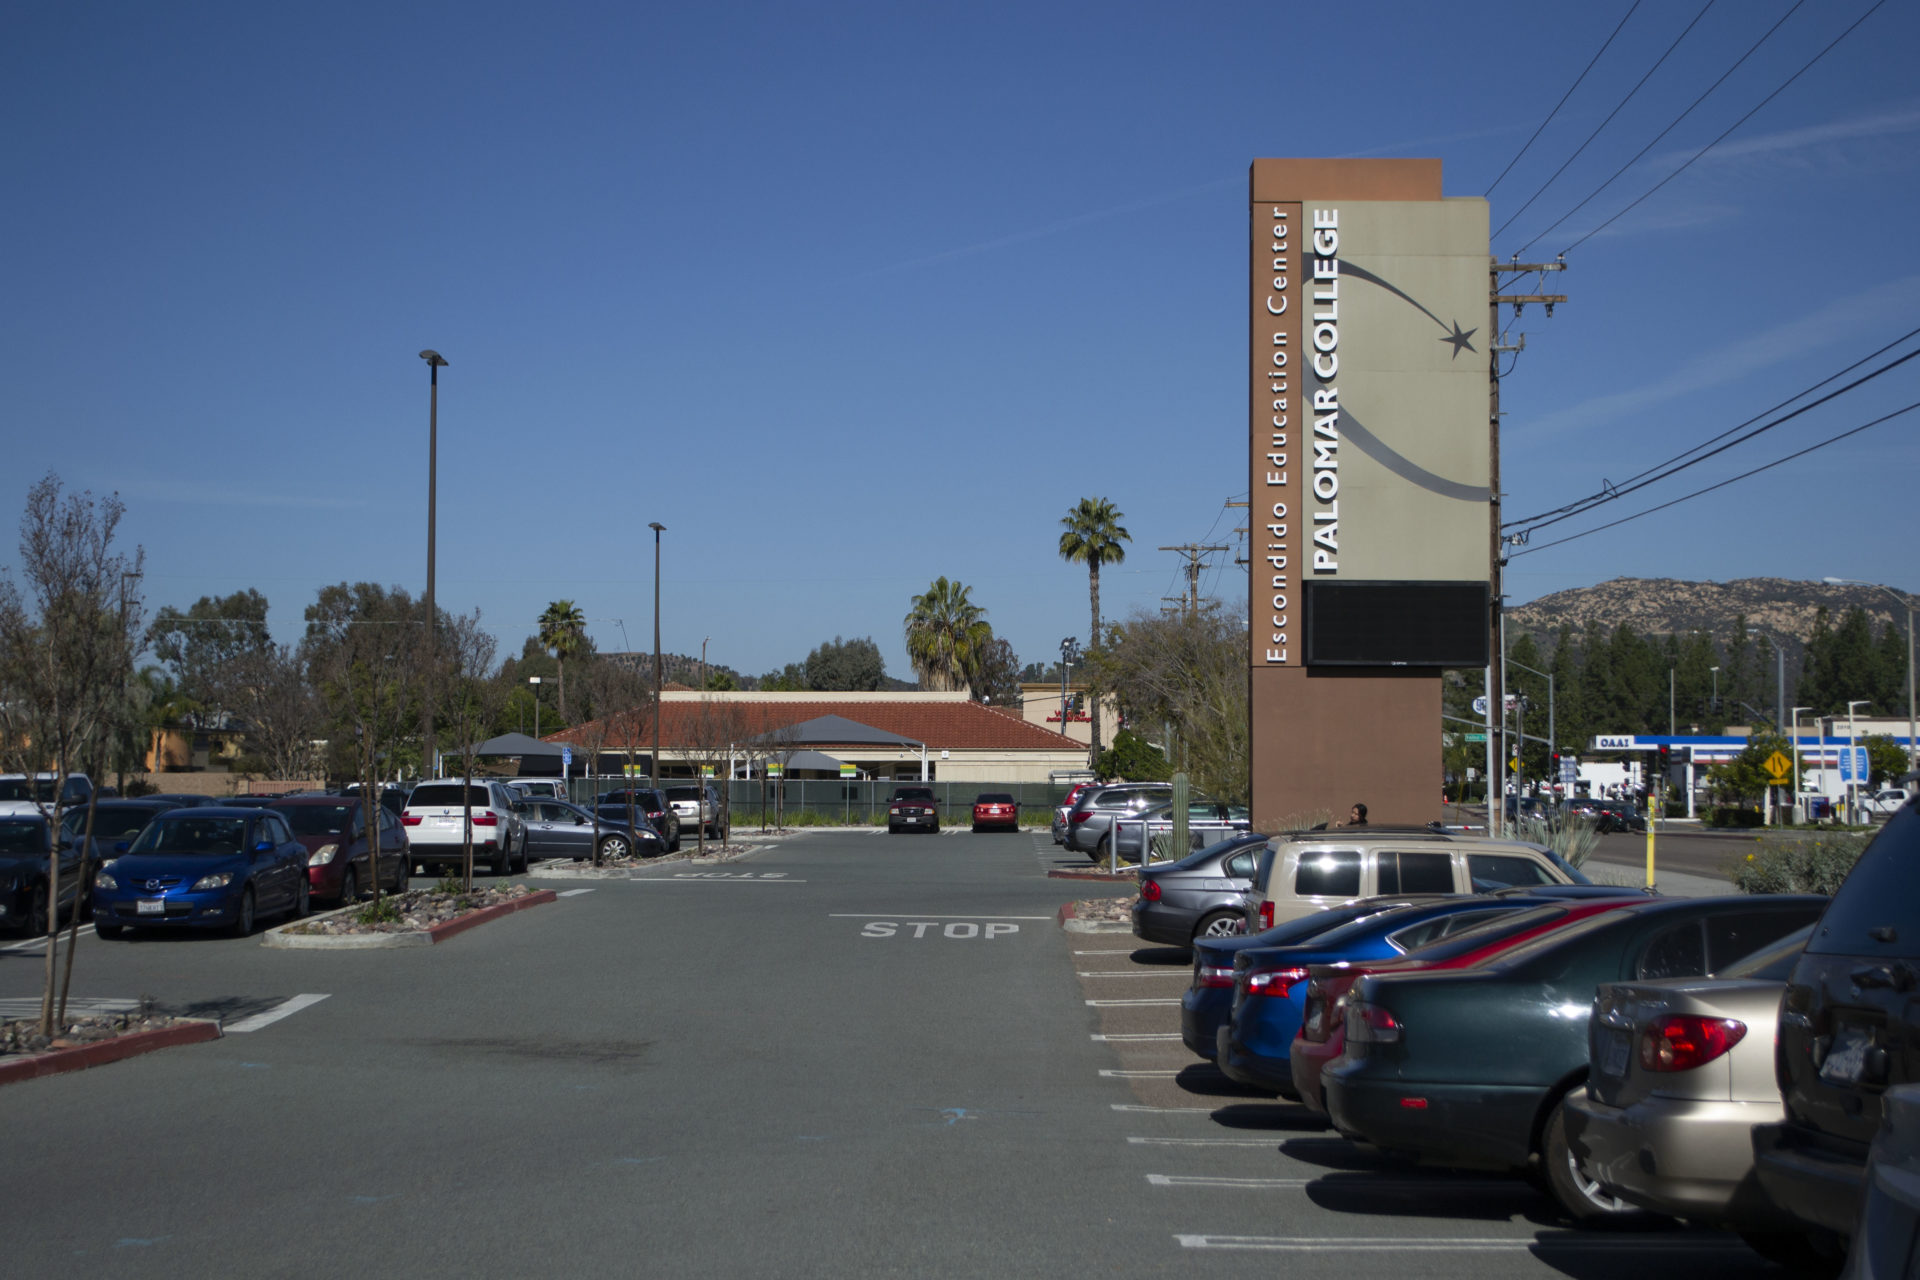 Palomar College Escondido Education Center library parking lot view